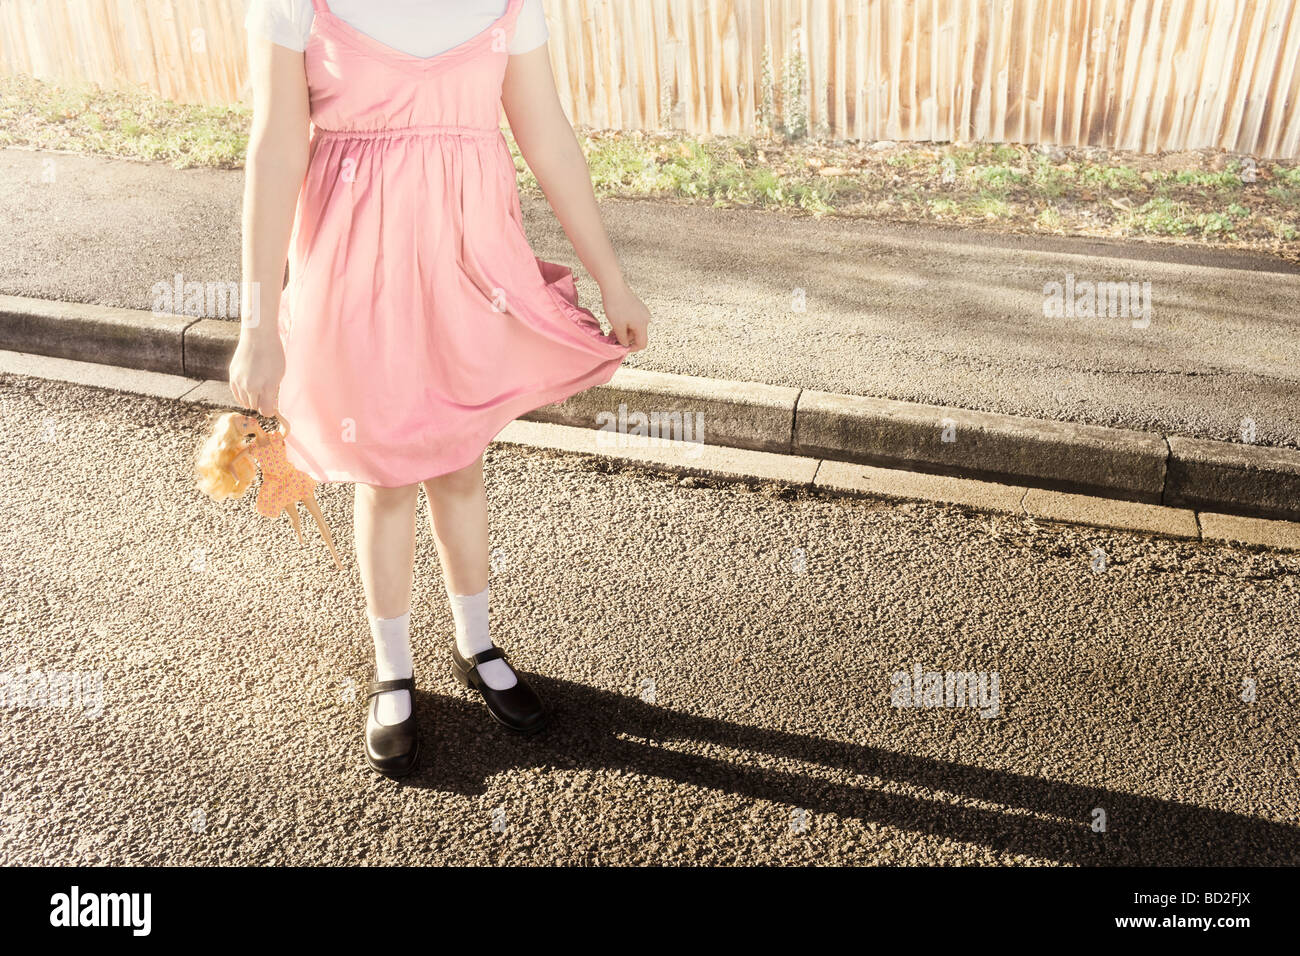 Abstract girl posing holding doll Photo Stock